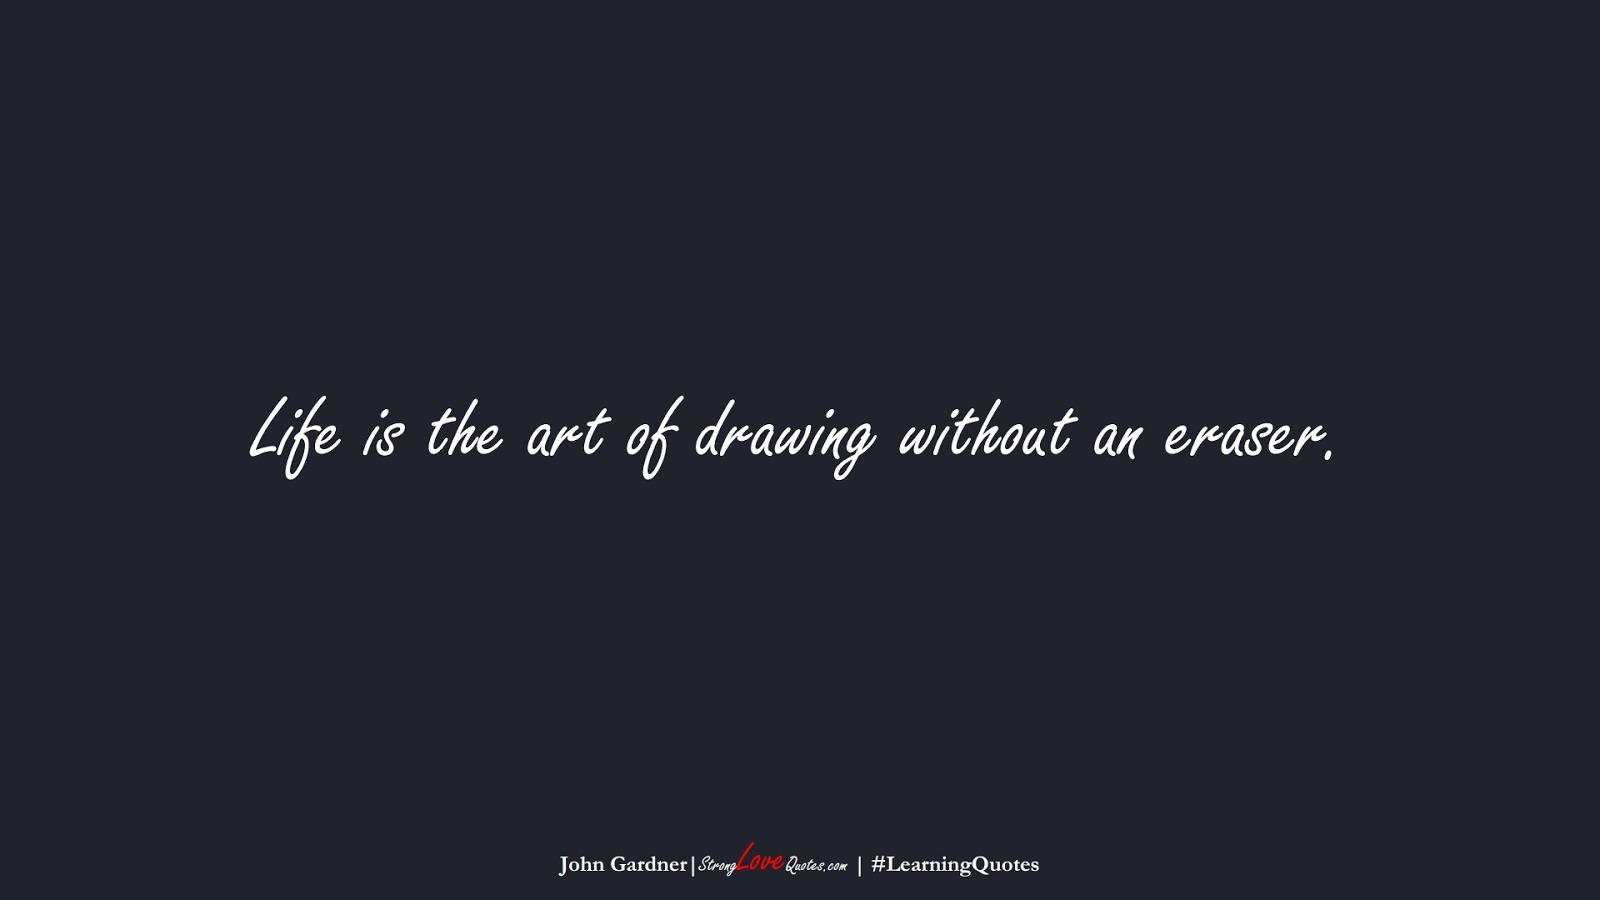 Life is the art of drawing without an eraser. (John Gardner);  #LearningQuotes